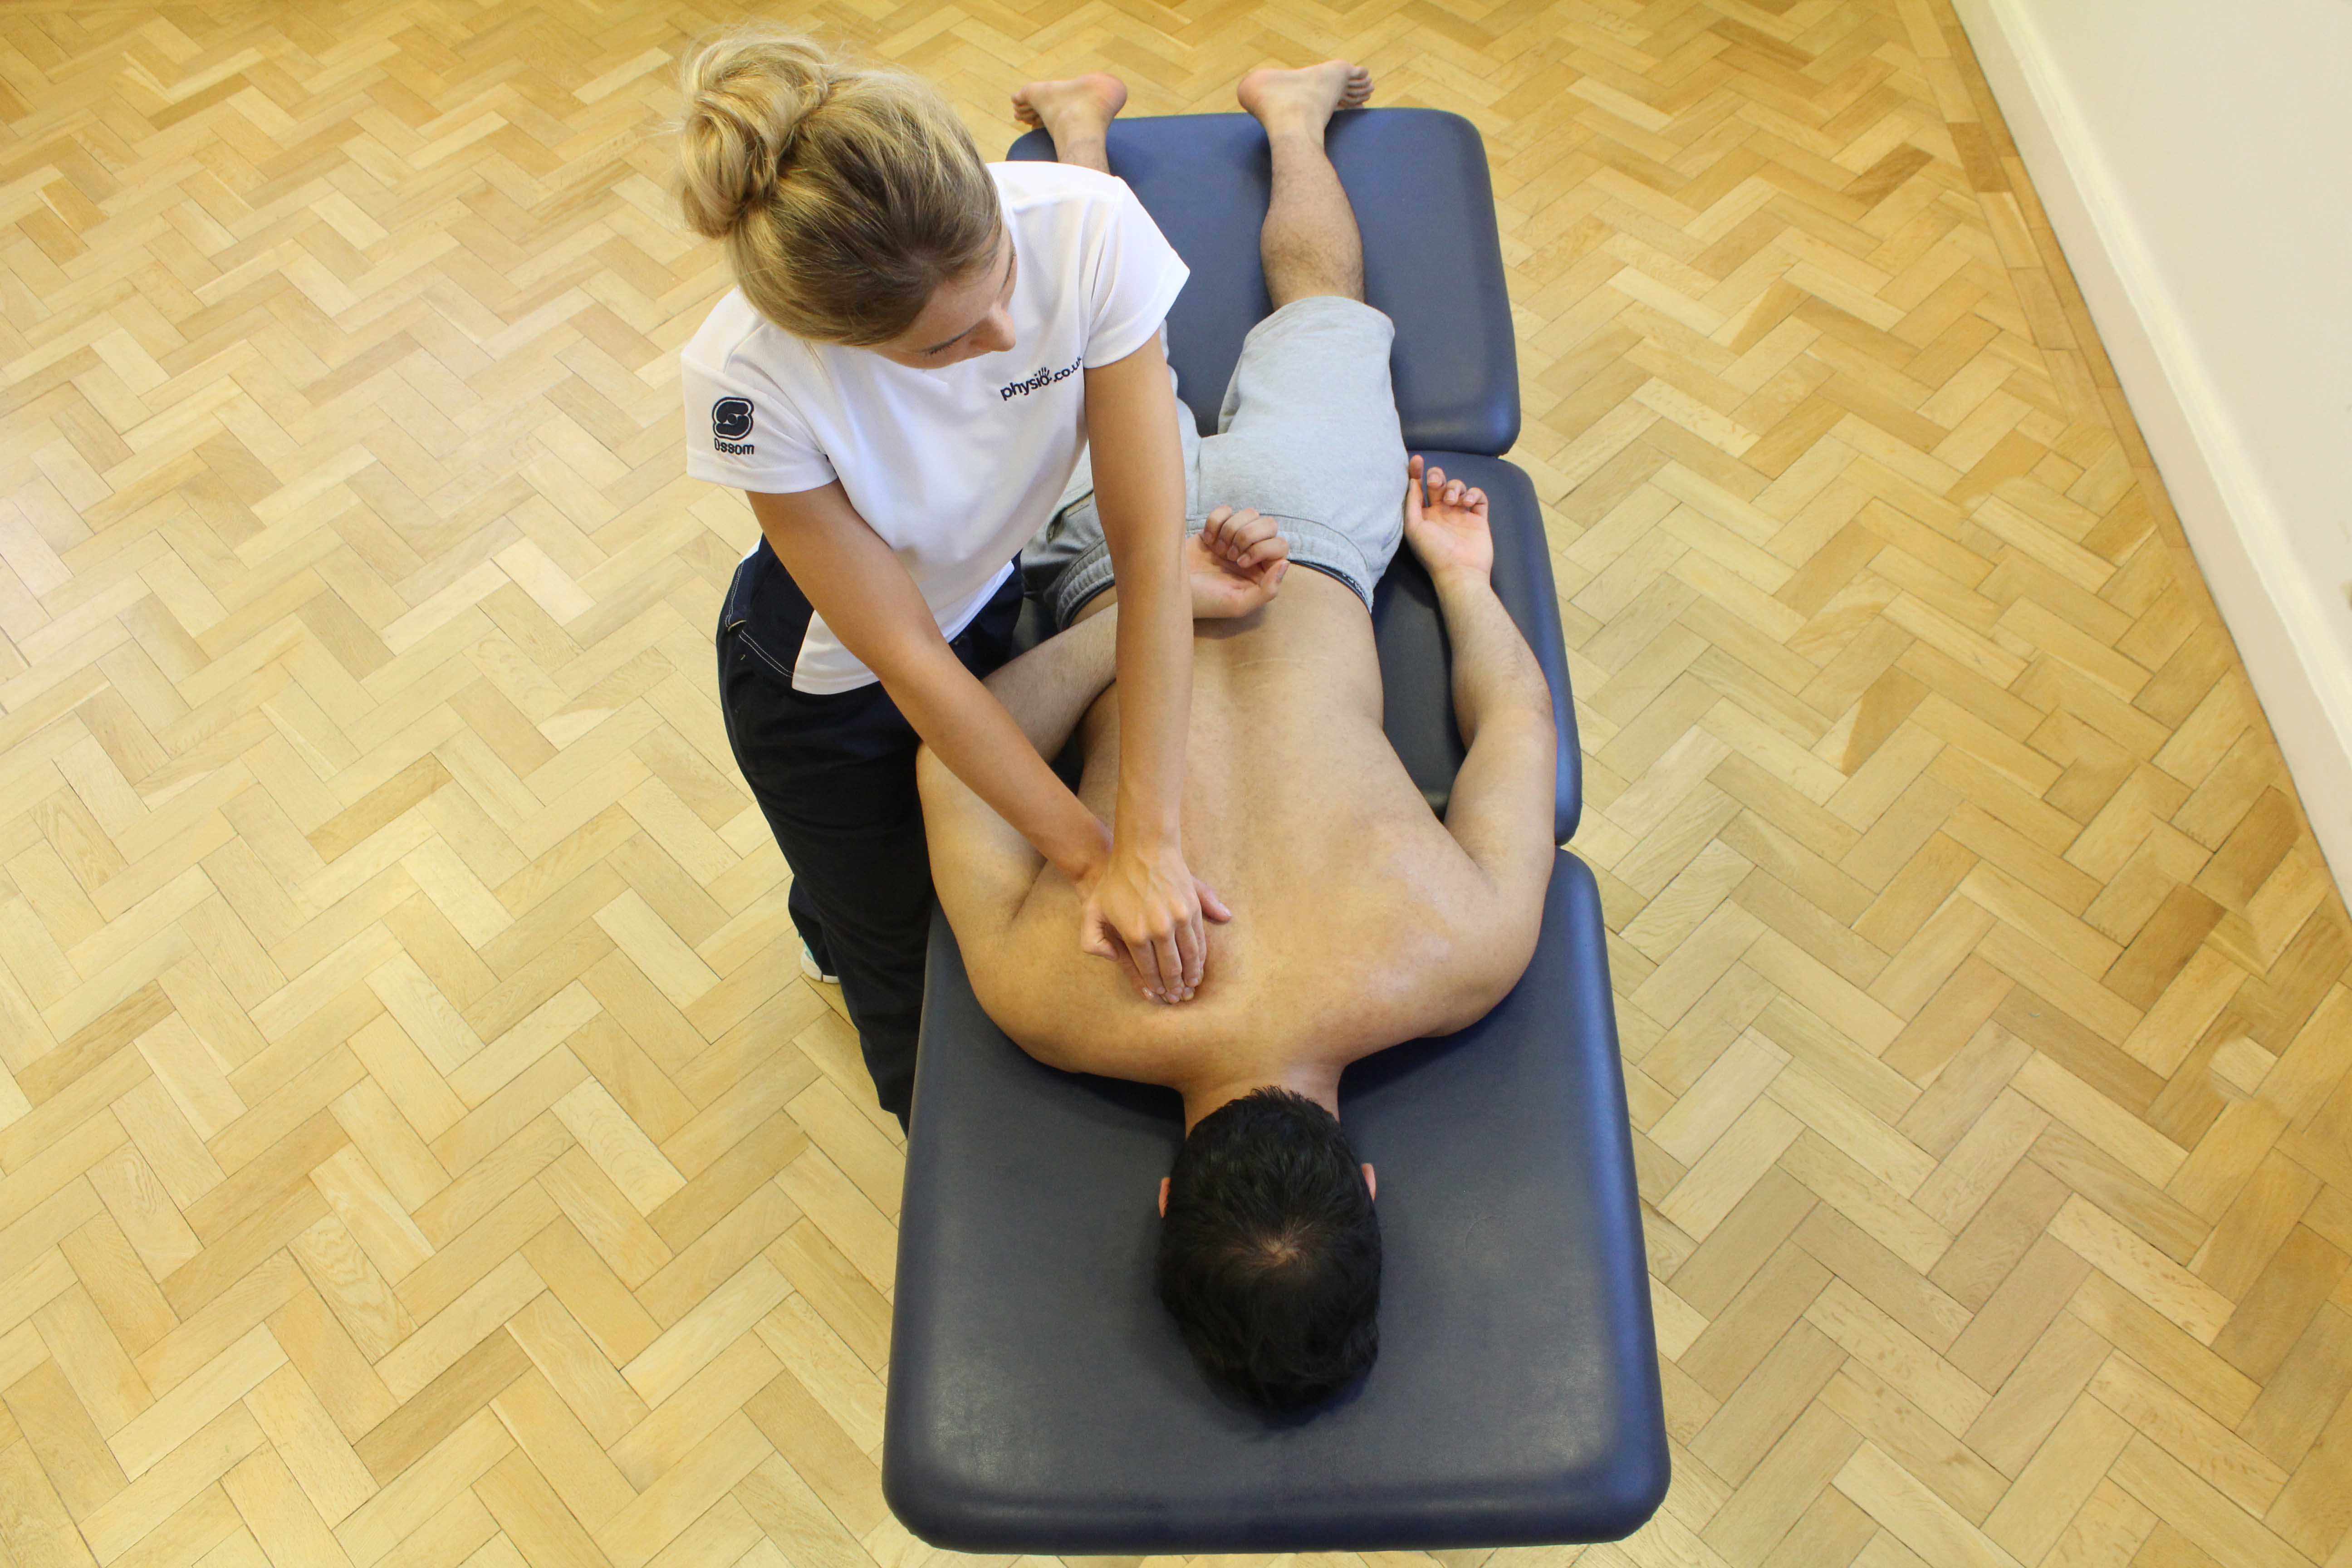 Soft tissue massage of upper back muscles